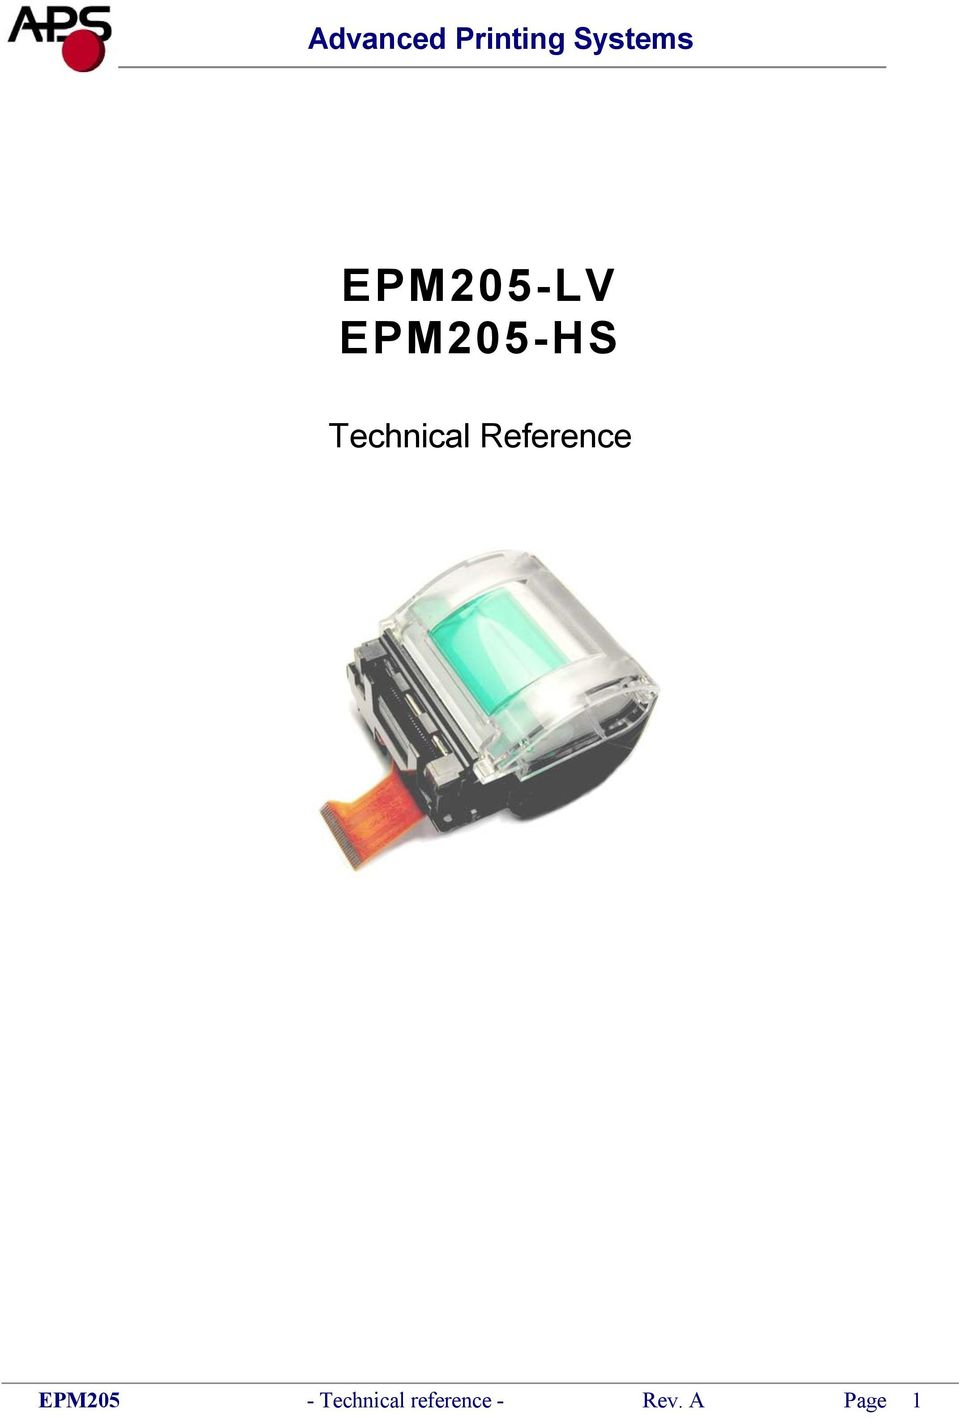 Reference EPM205 -